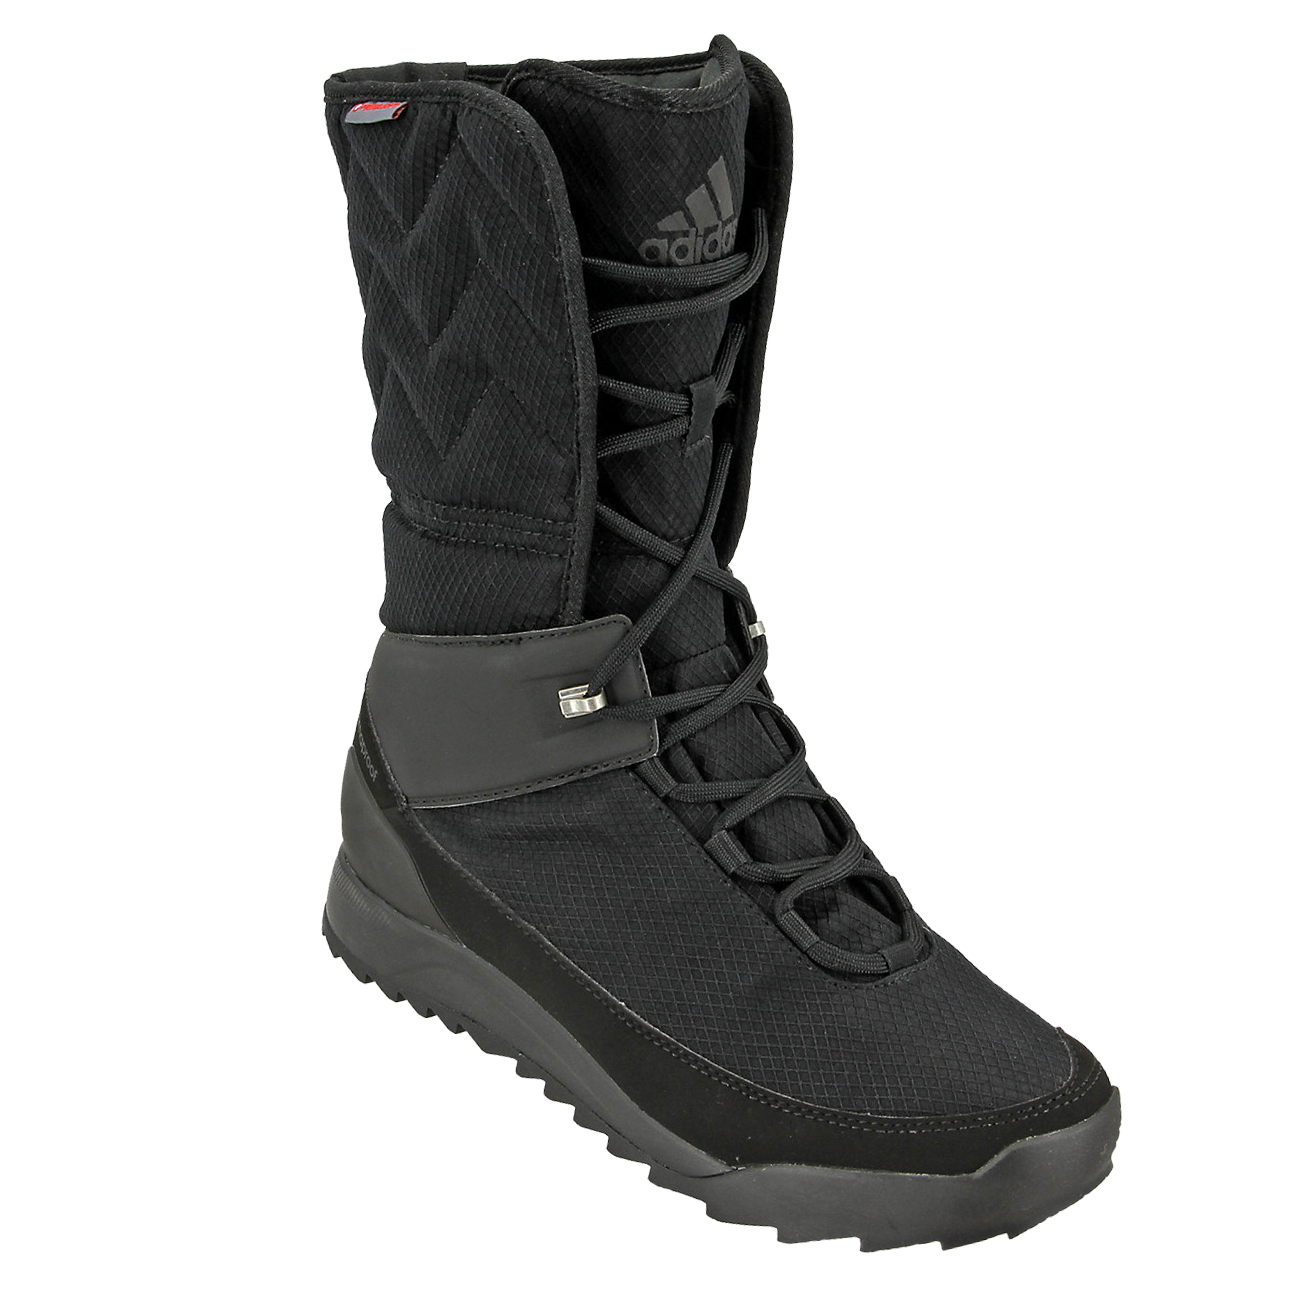 <p>Adidas Outdoor Boots</p>